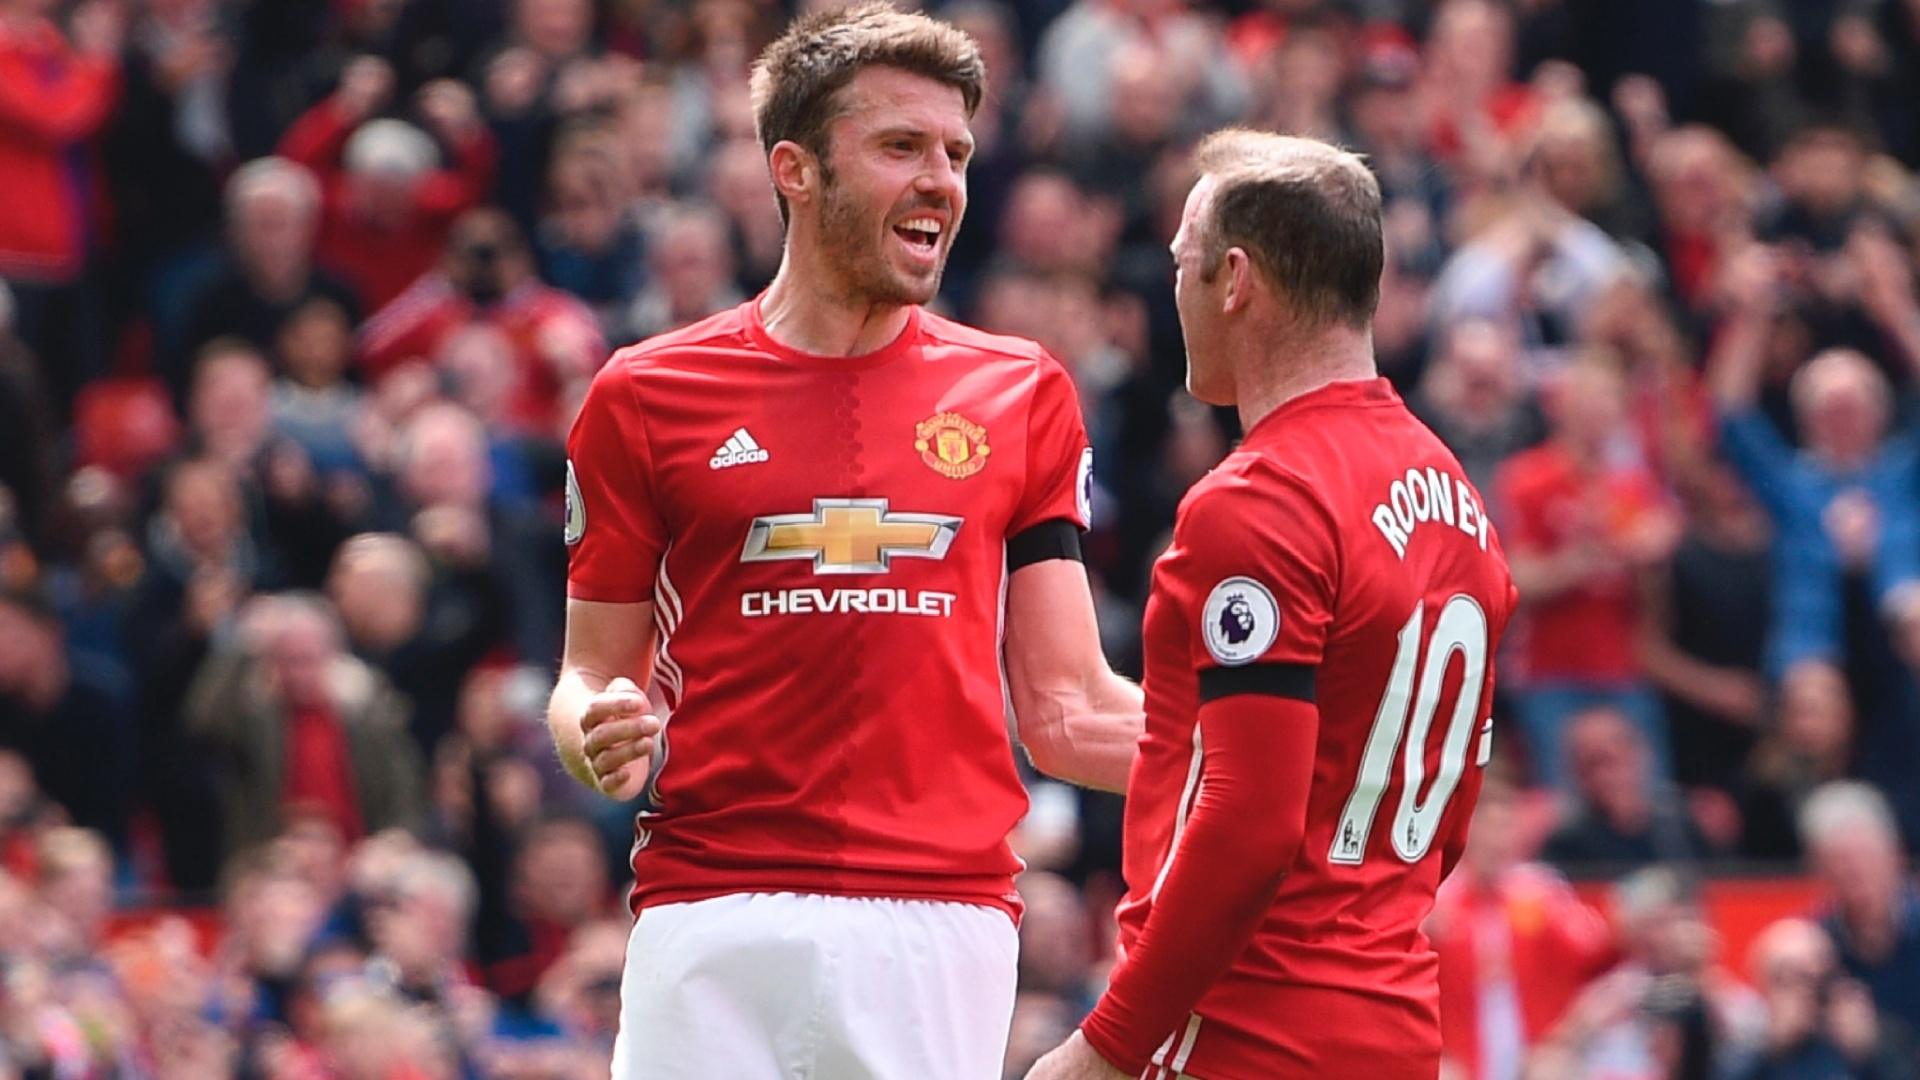 Michael Carrick comemora gol do Manchester United com Rooney